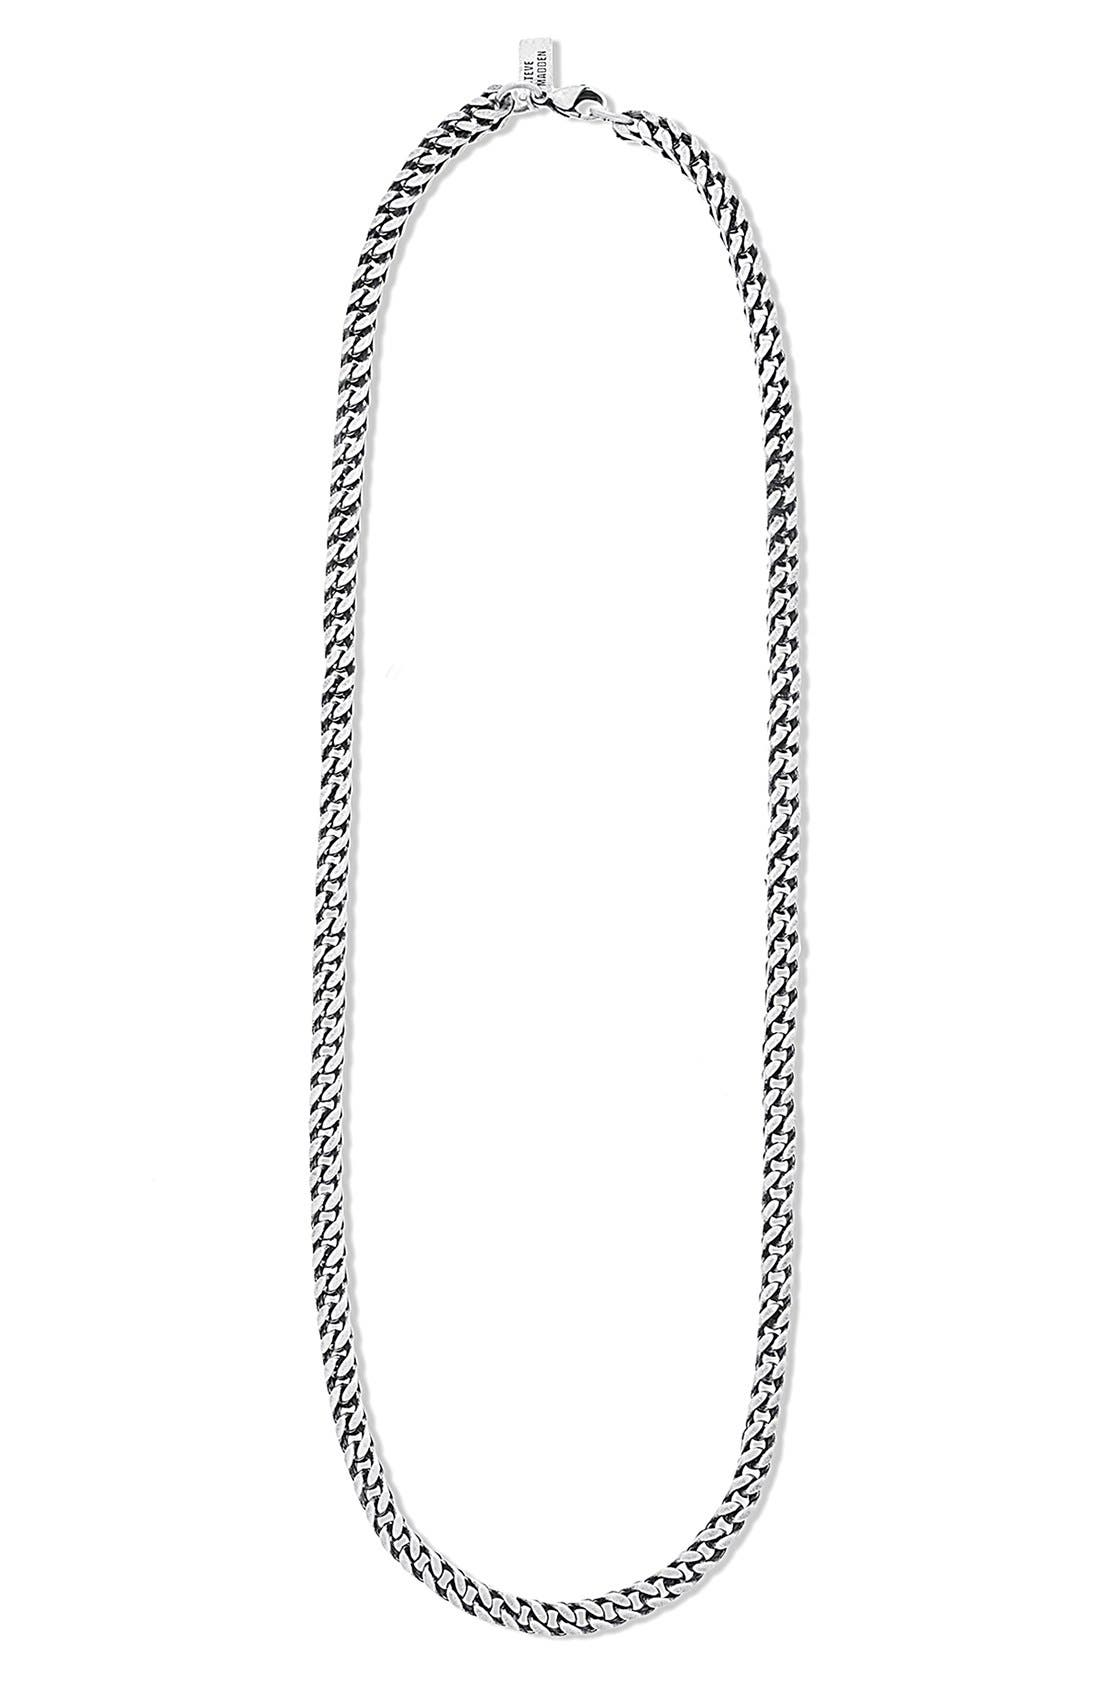 Steve Madden 'Classic' Franco Chain Necklace